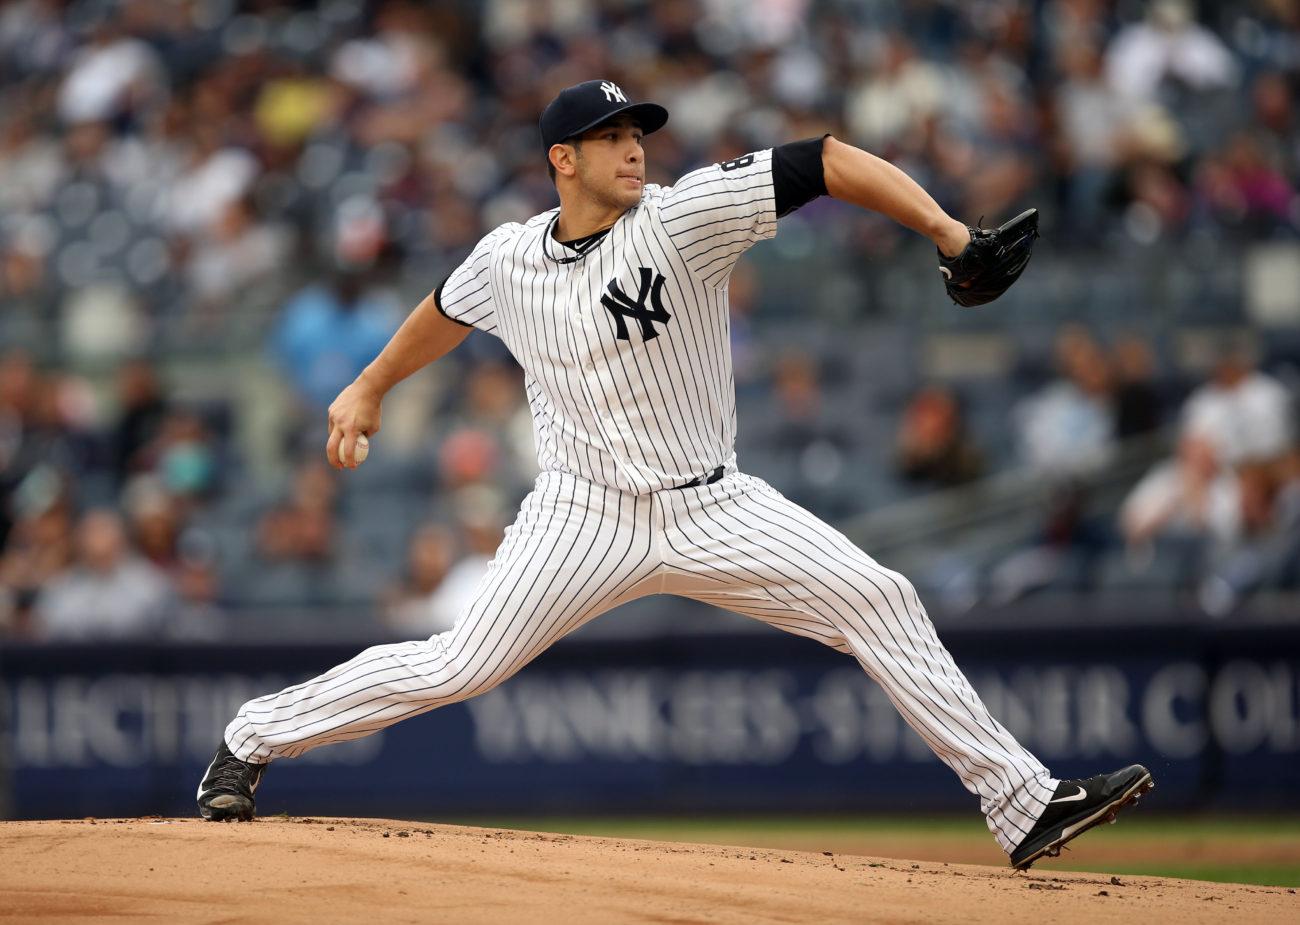 Oct 2, 2016; Bronx, NY, USA; New York Yankees starting pitcher Luis Cessa (85) throws during the first inning against the Baltimore Orioles at Yankee Stadium. Mandatory Credit: Danny Wild-USA TODAY Sports